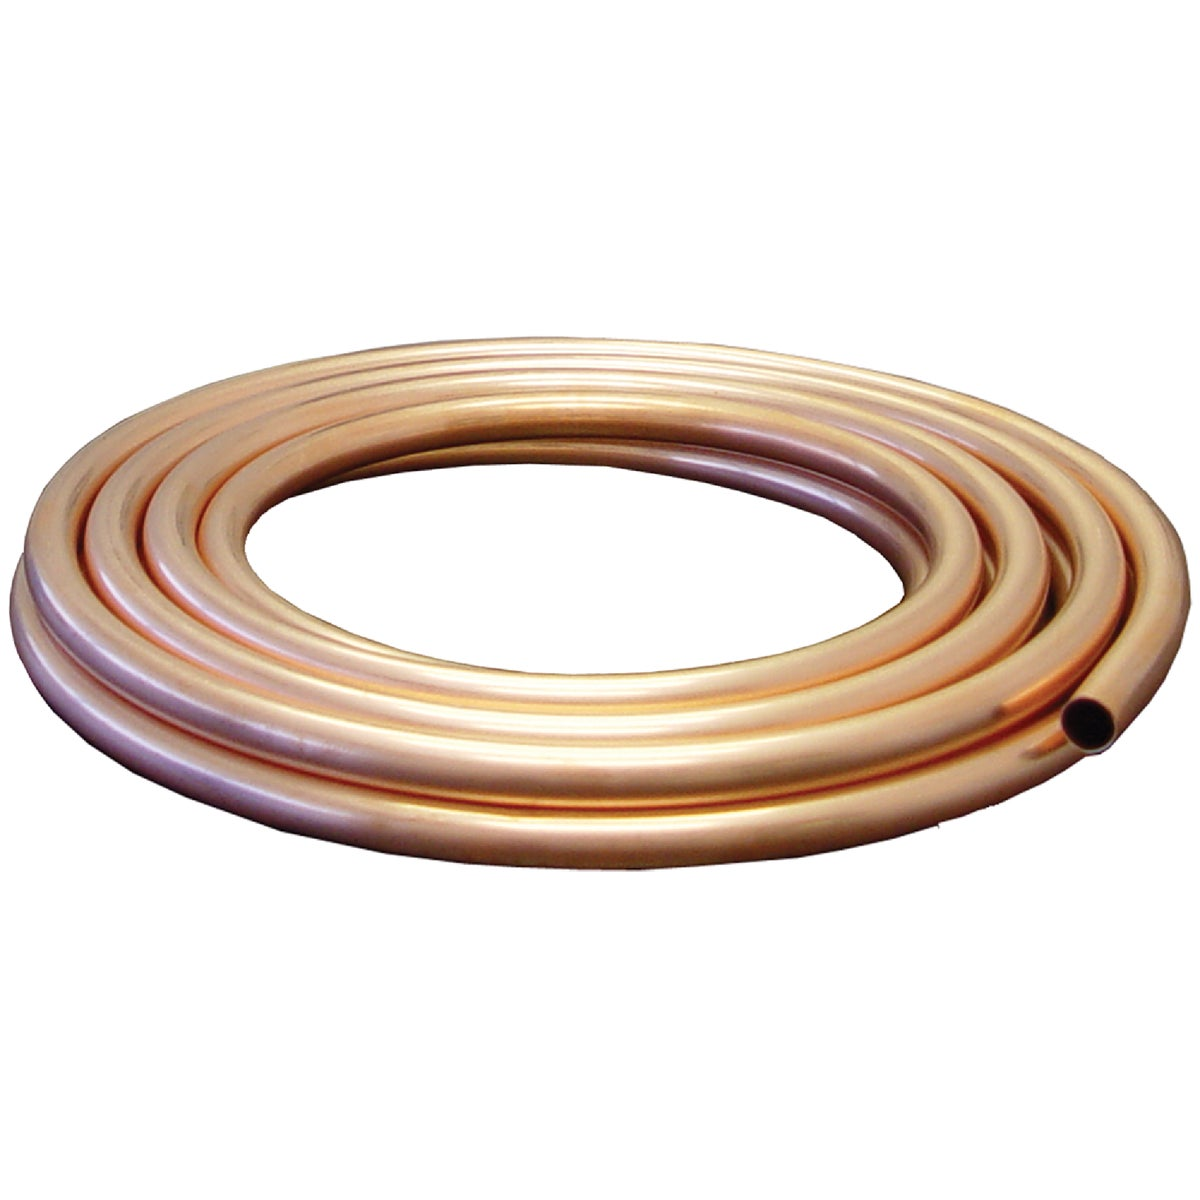 "1/4""ODX20'UG COPPER COIL - UT04020 by Mueller B K"